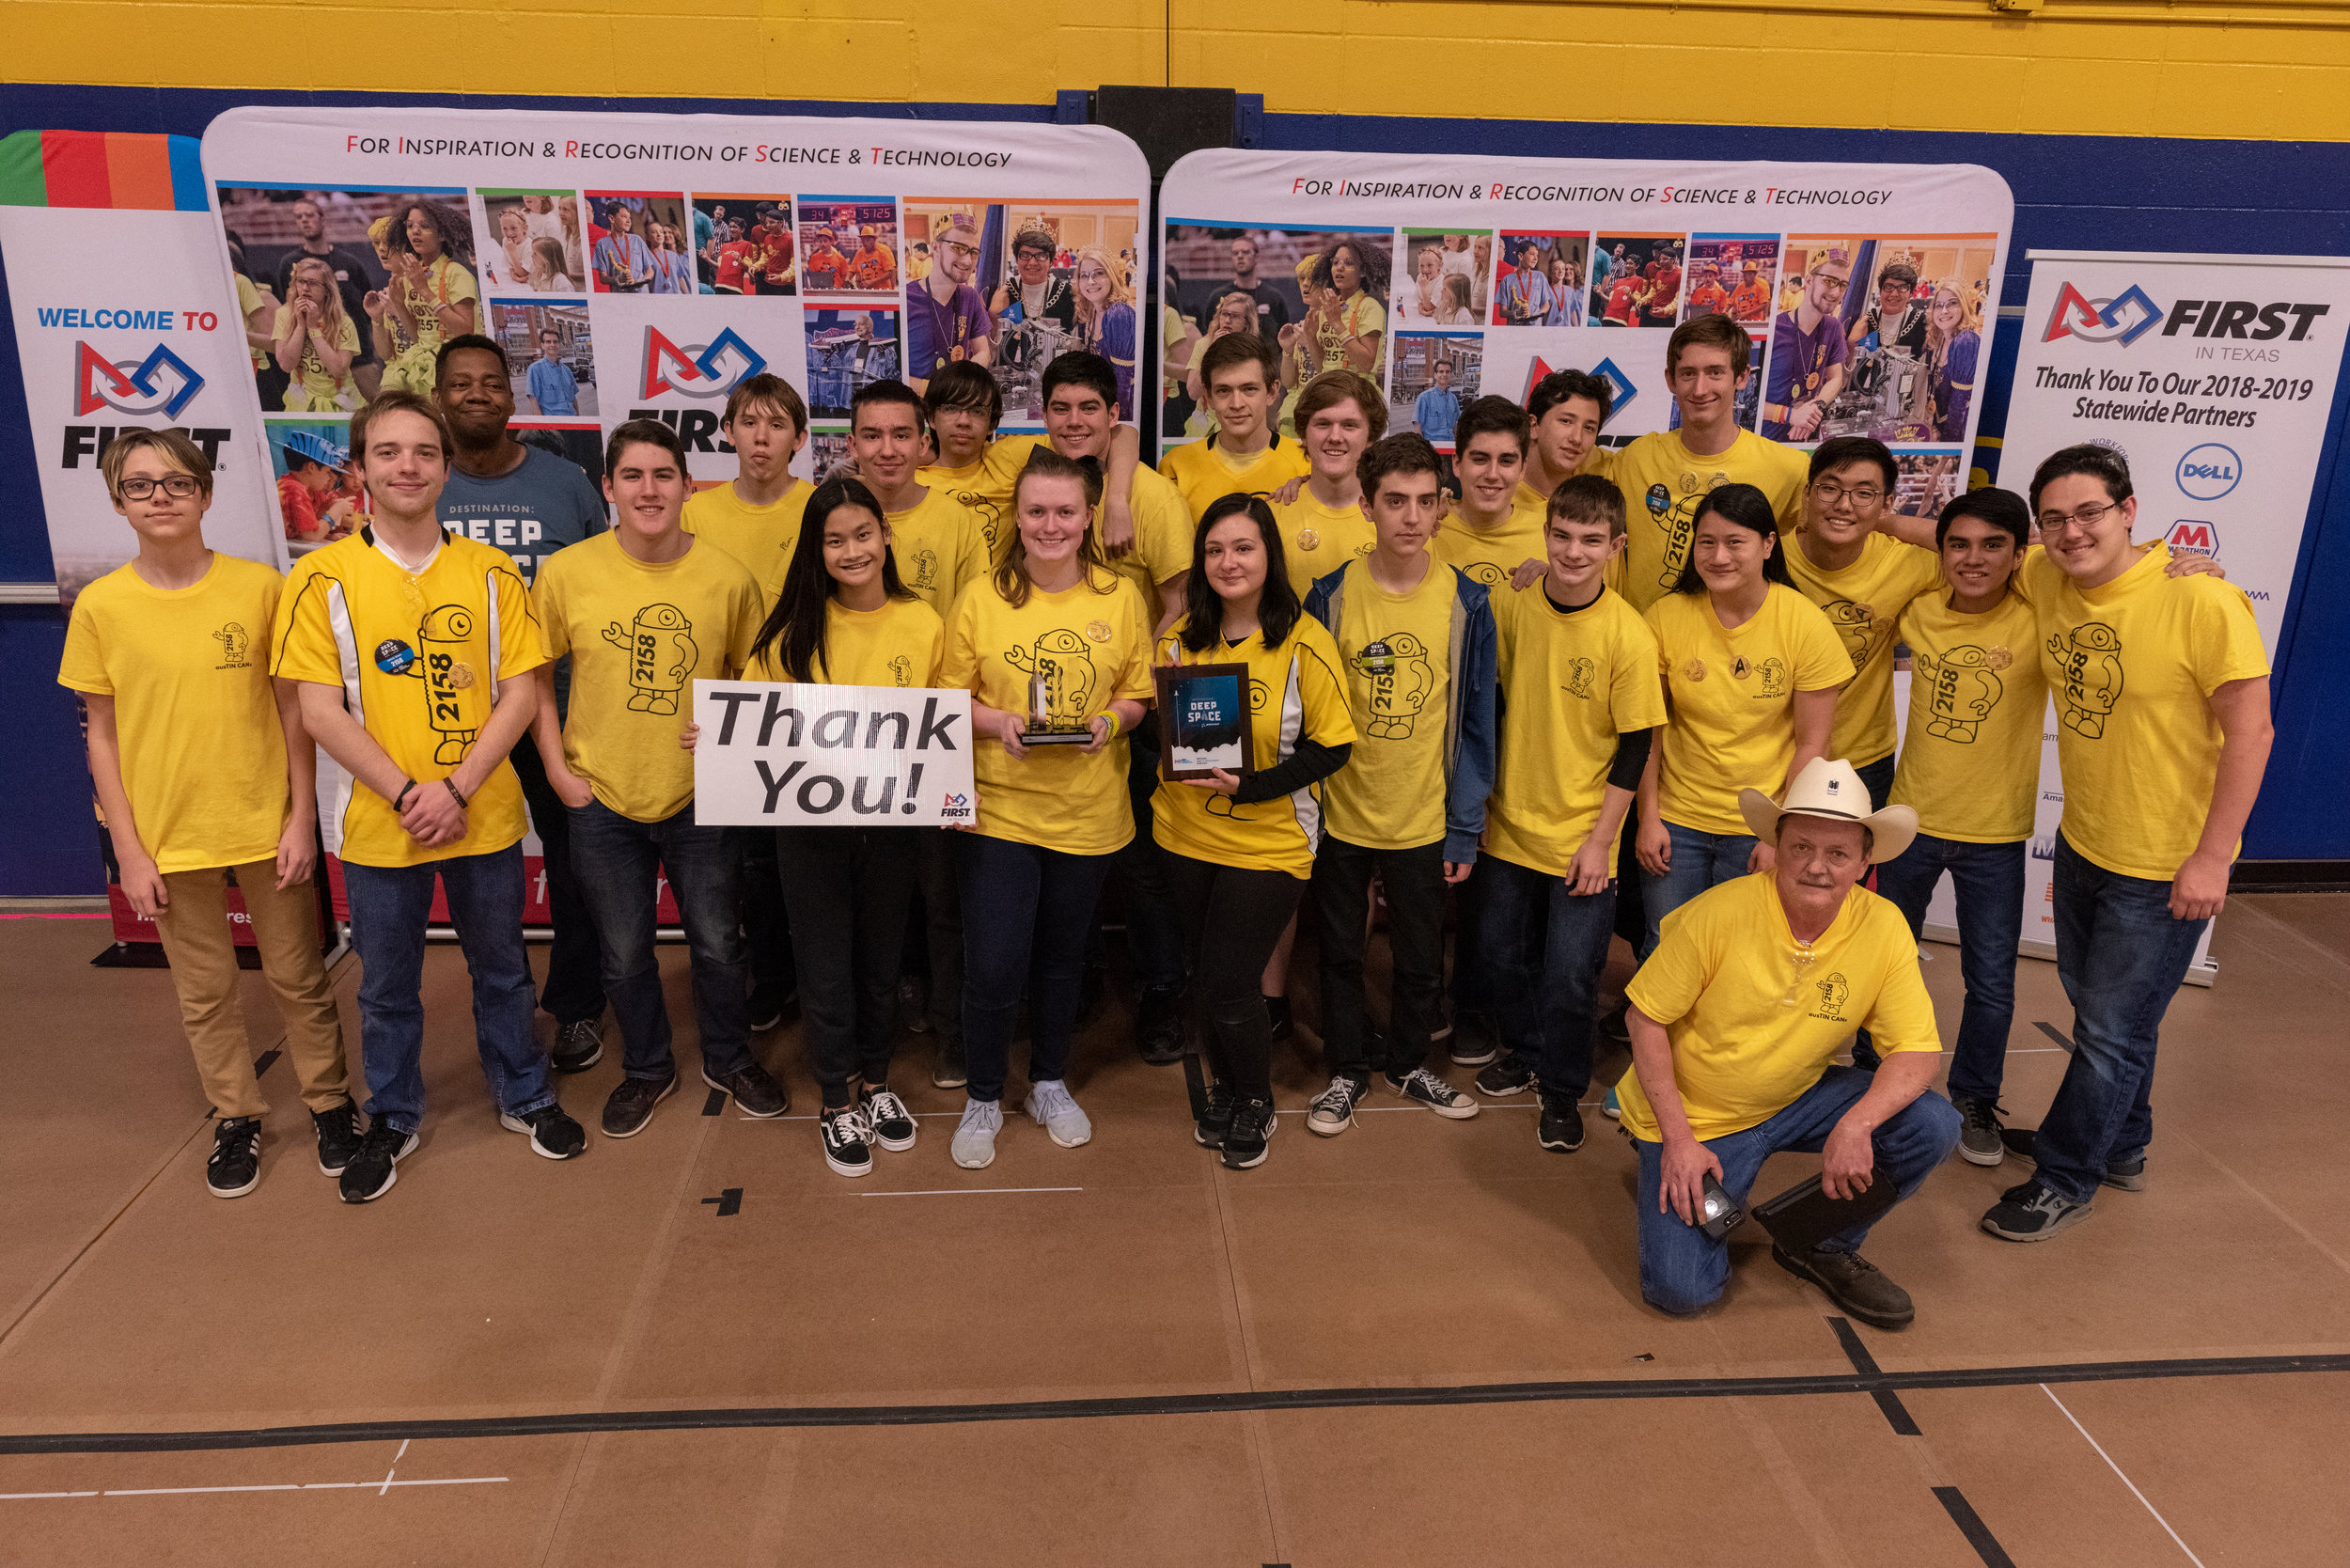 FRC team received the Judges' Award and were Tournament Finalists at the 2019 Week 1 District Event.